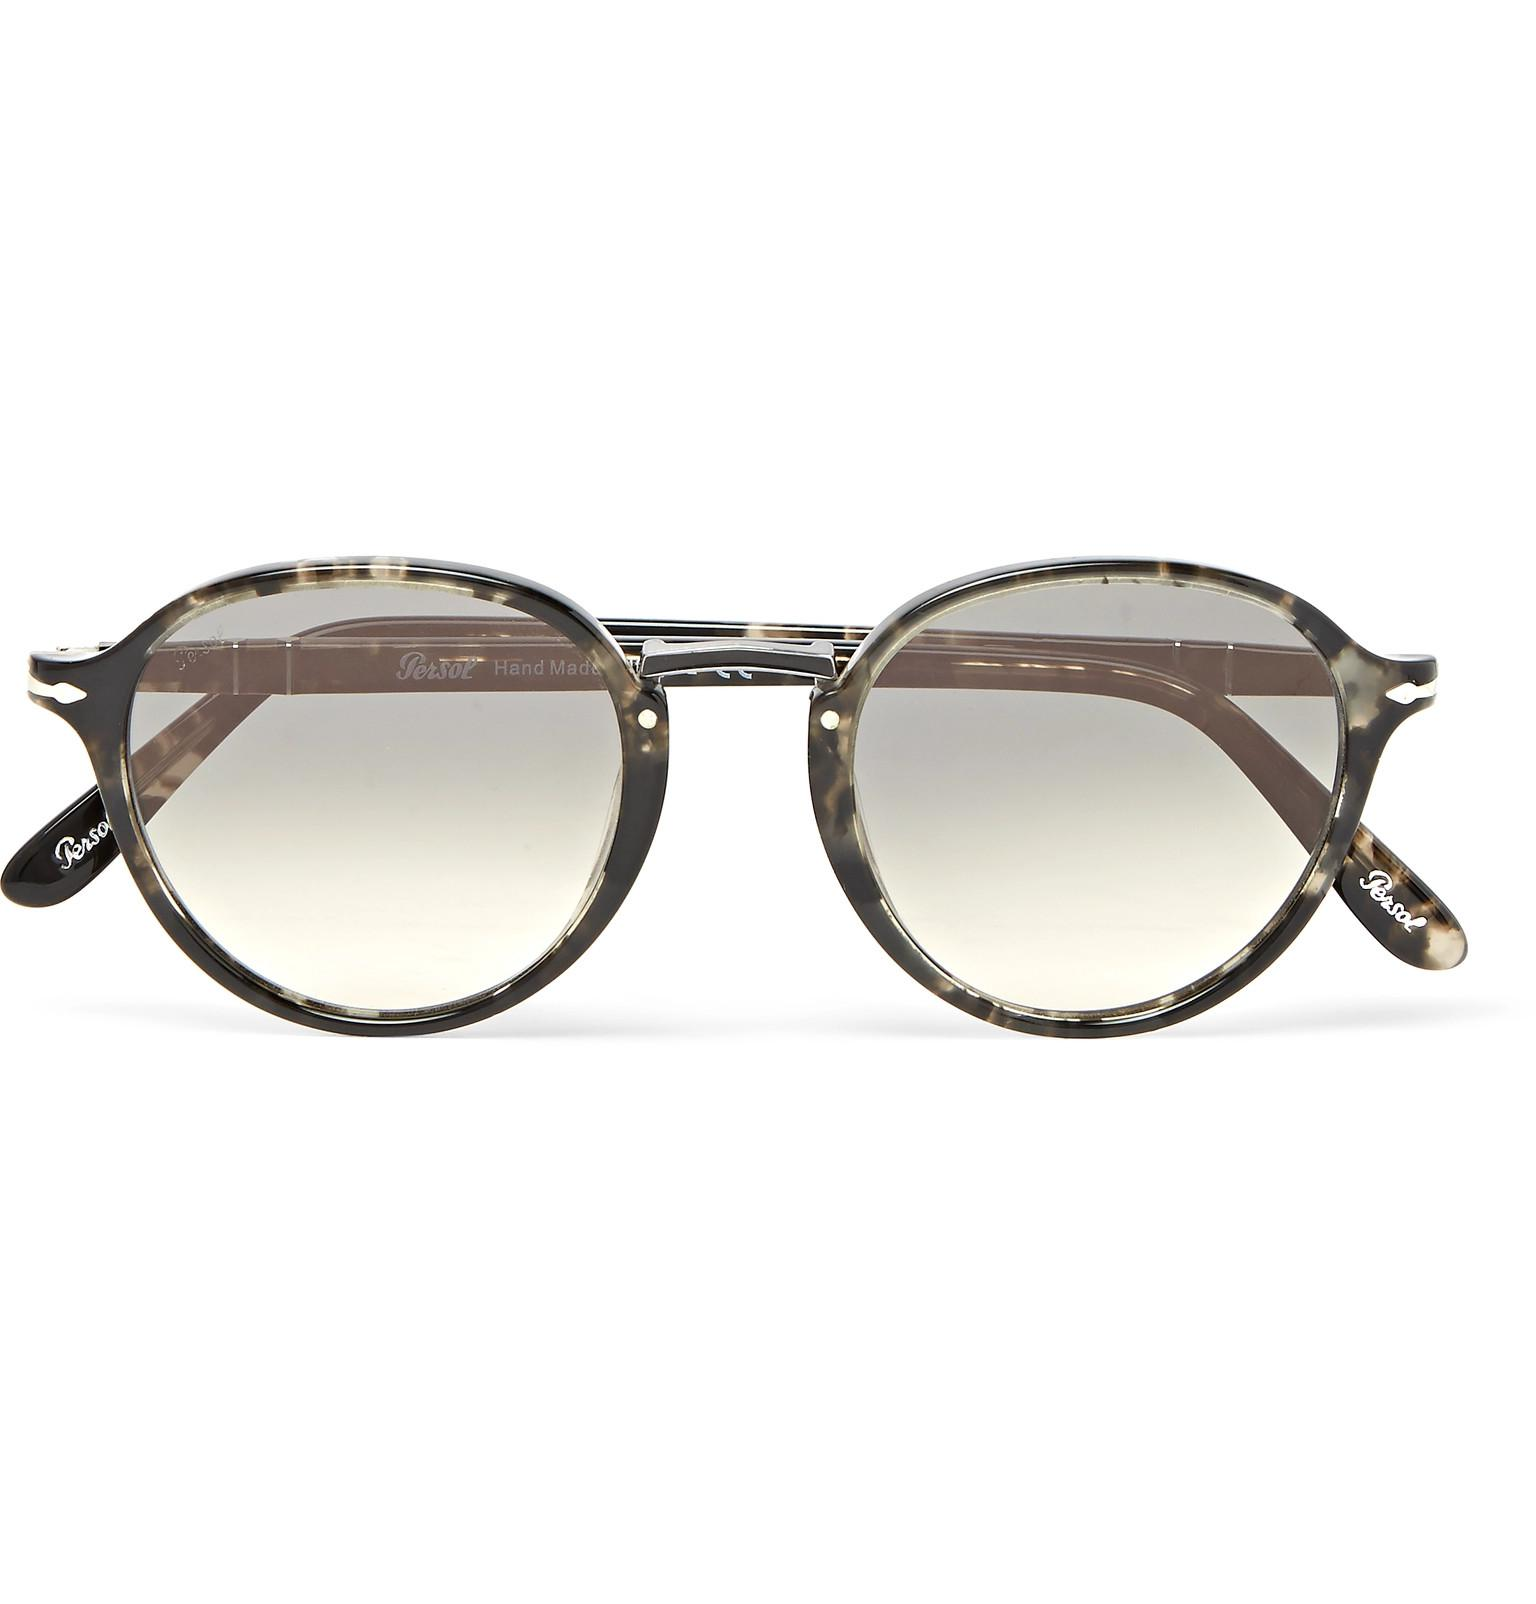 aef5ecab2f Lyst - Persol Round-frame Tortoiseshell Acetate Sunglasses in Gray ...